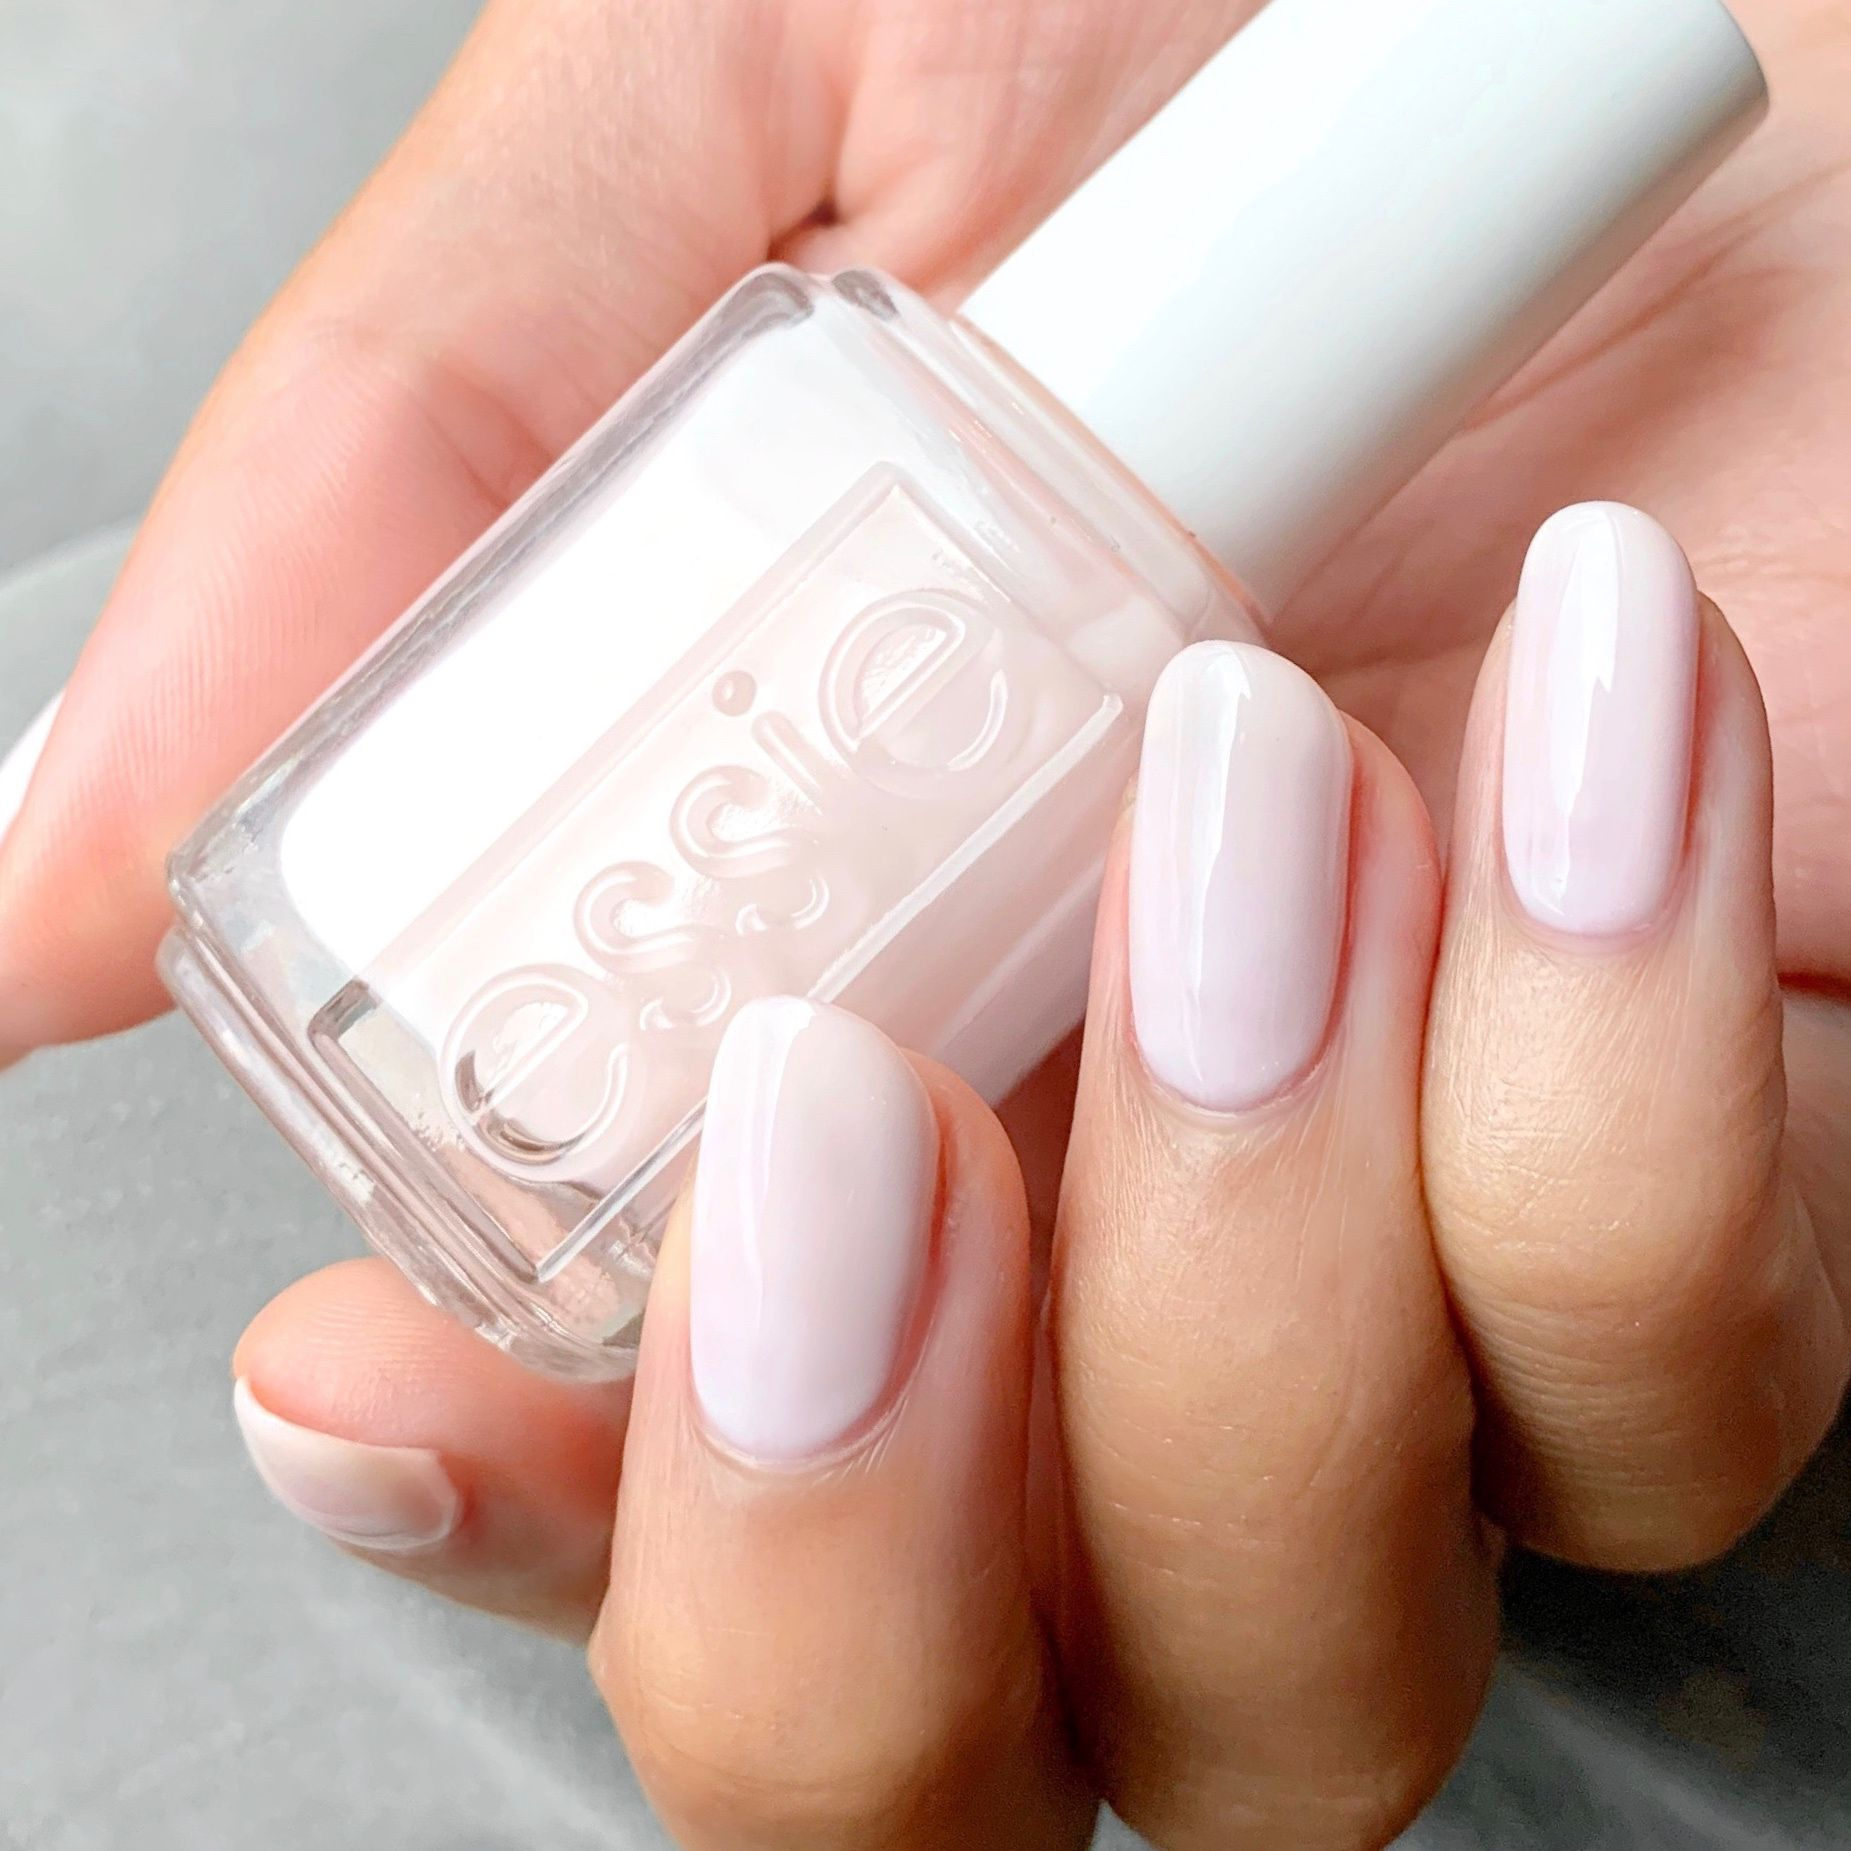 Essie Ballet Slippers A Classic Sheer Pale Pink Nail Polish Ballet Slippers Nail Polish Nail Colors For Pale Skin Pale Pink Nails